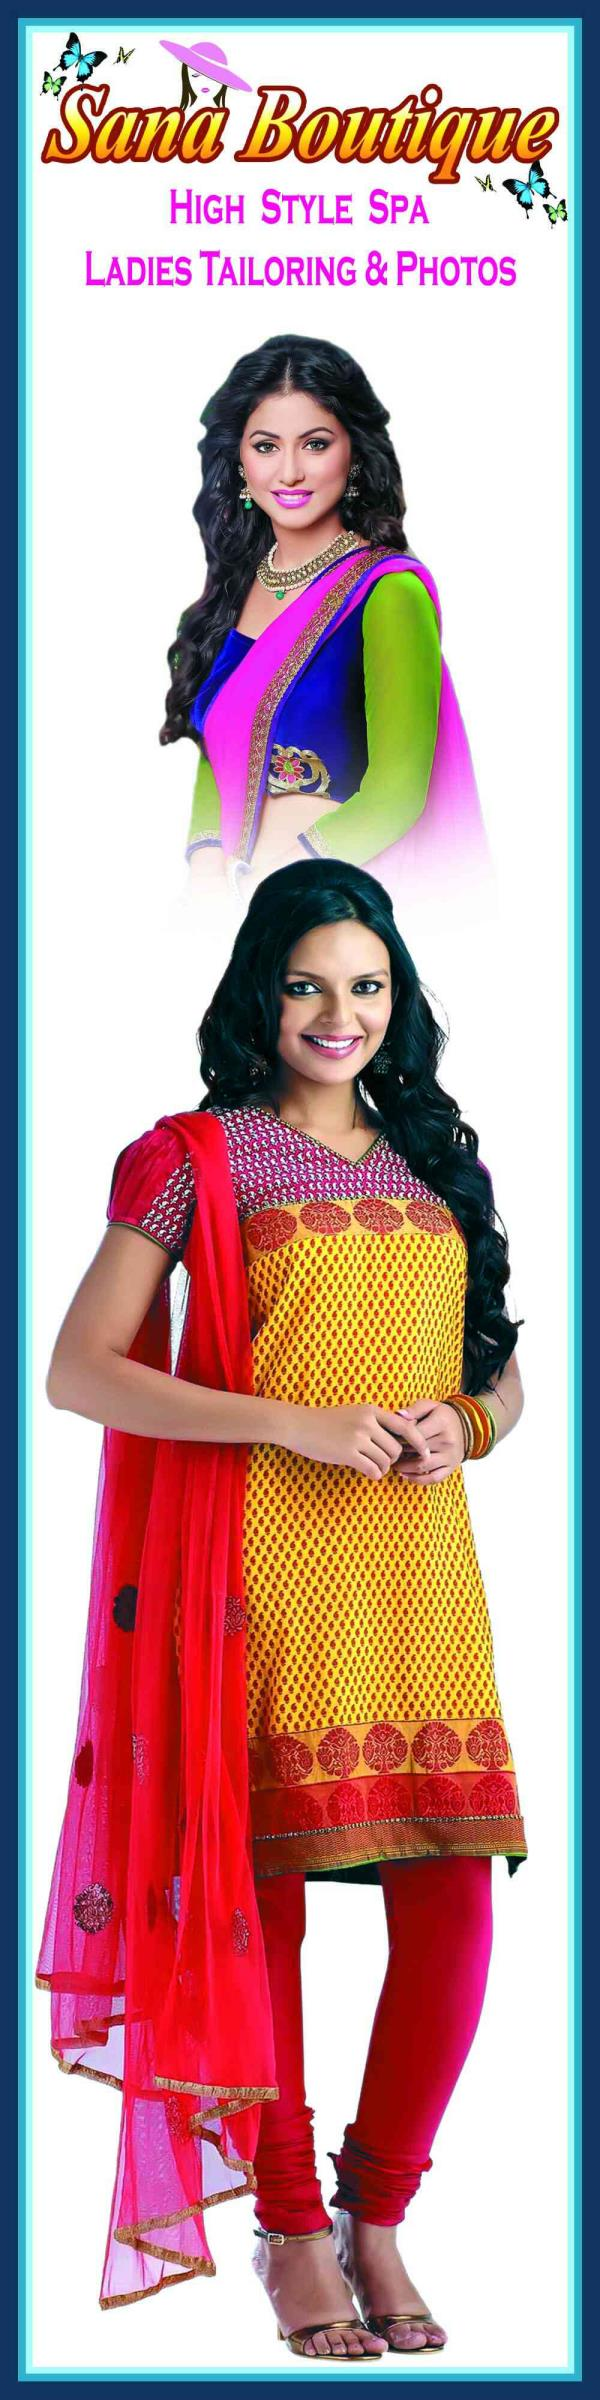 Cotton tops Offer!!!   Buy  1 @Rs349/- 2@649/- 3@949/-  Limited stocks available  - by Sana Boutique, Madurai